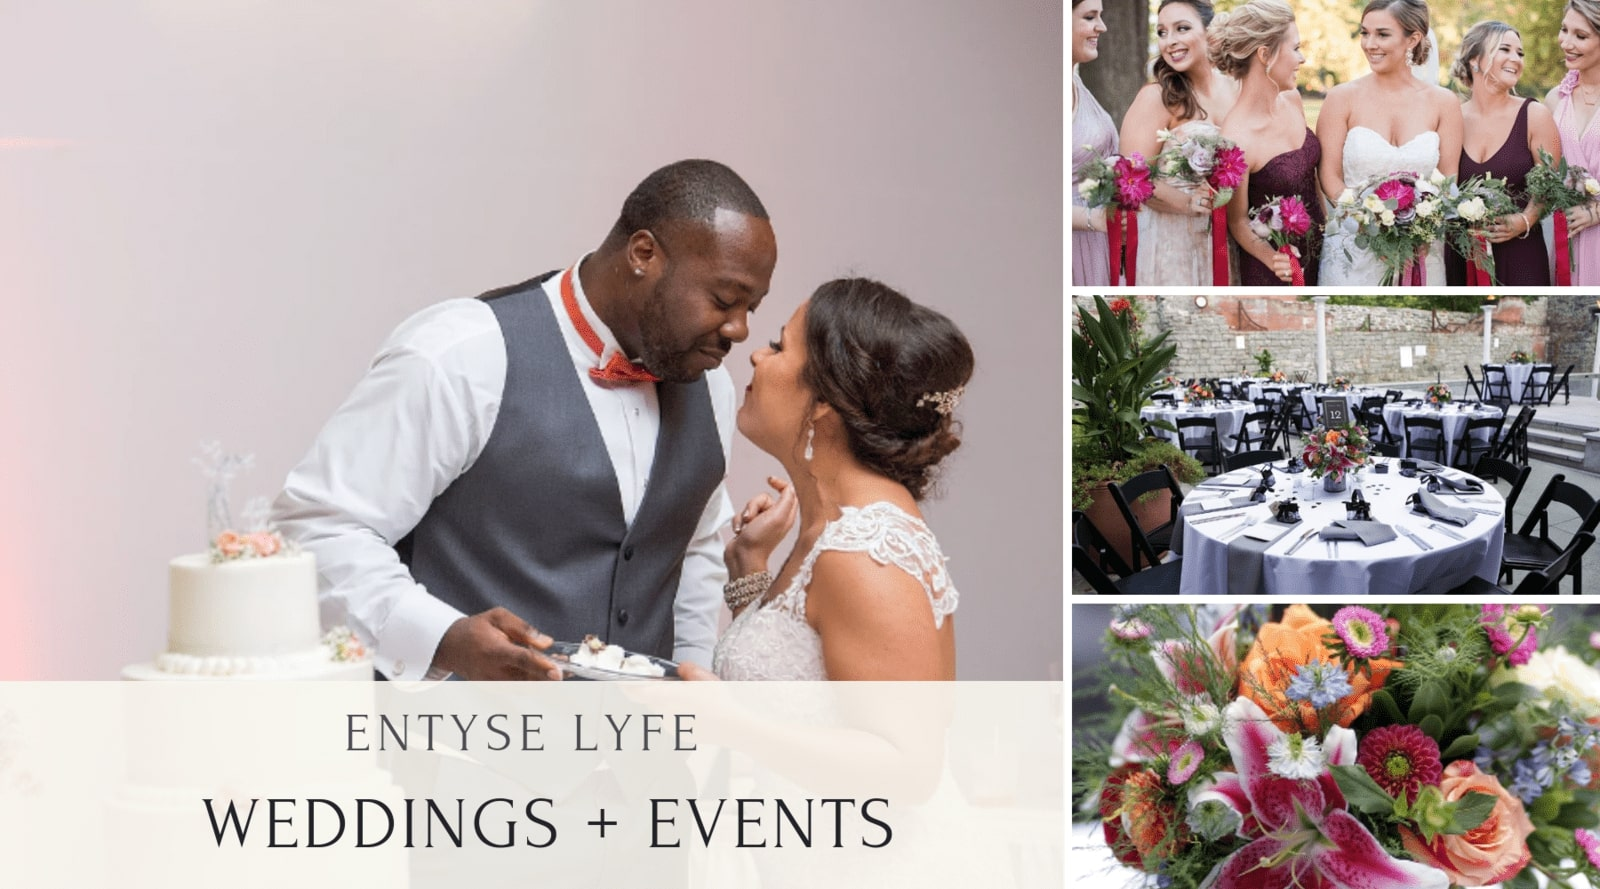 Today's Expert: Andrea Davis from Entyse Lyfe Weddings and Events